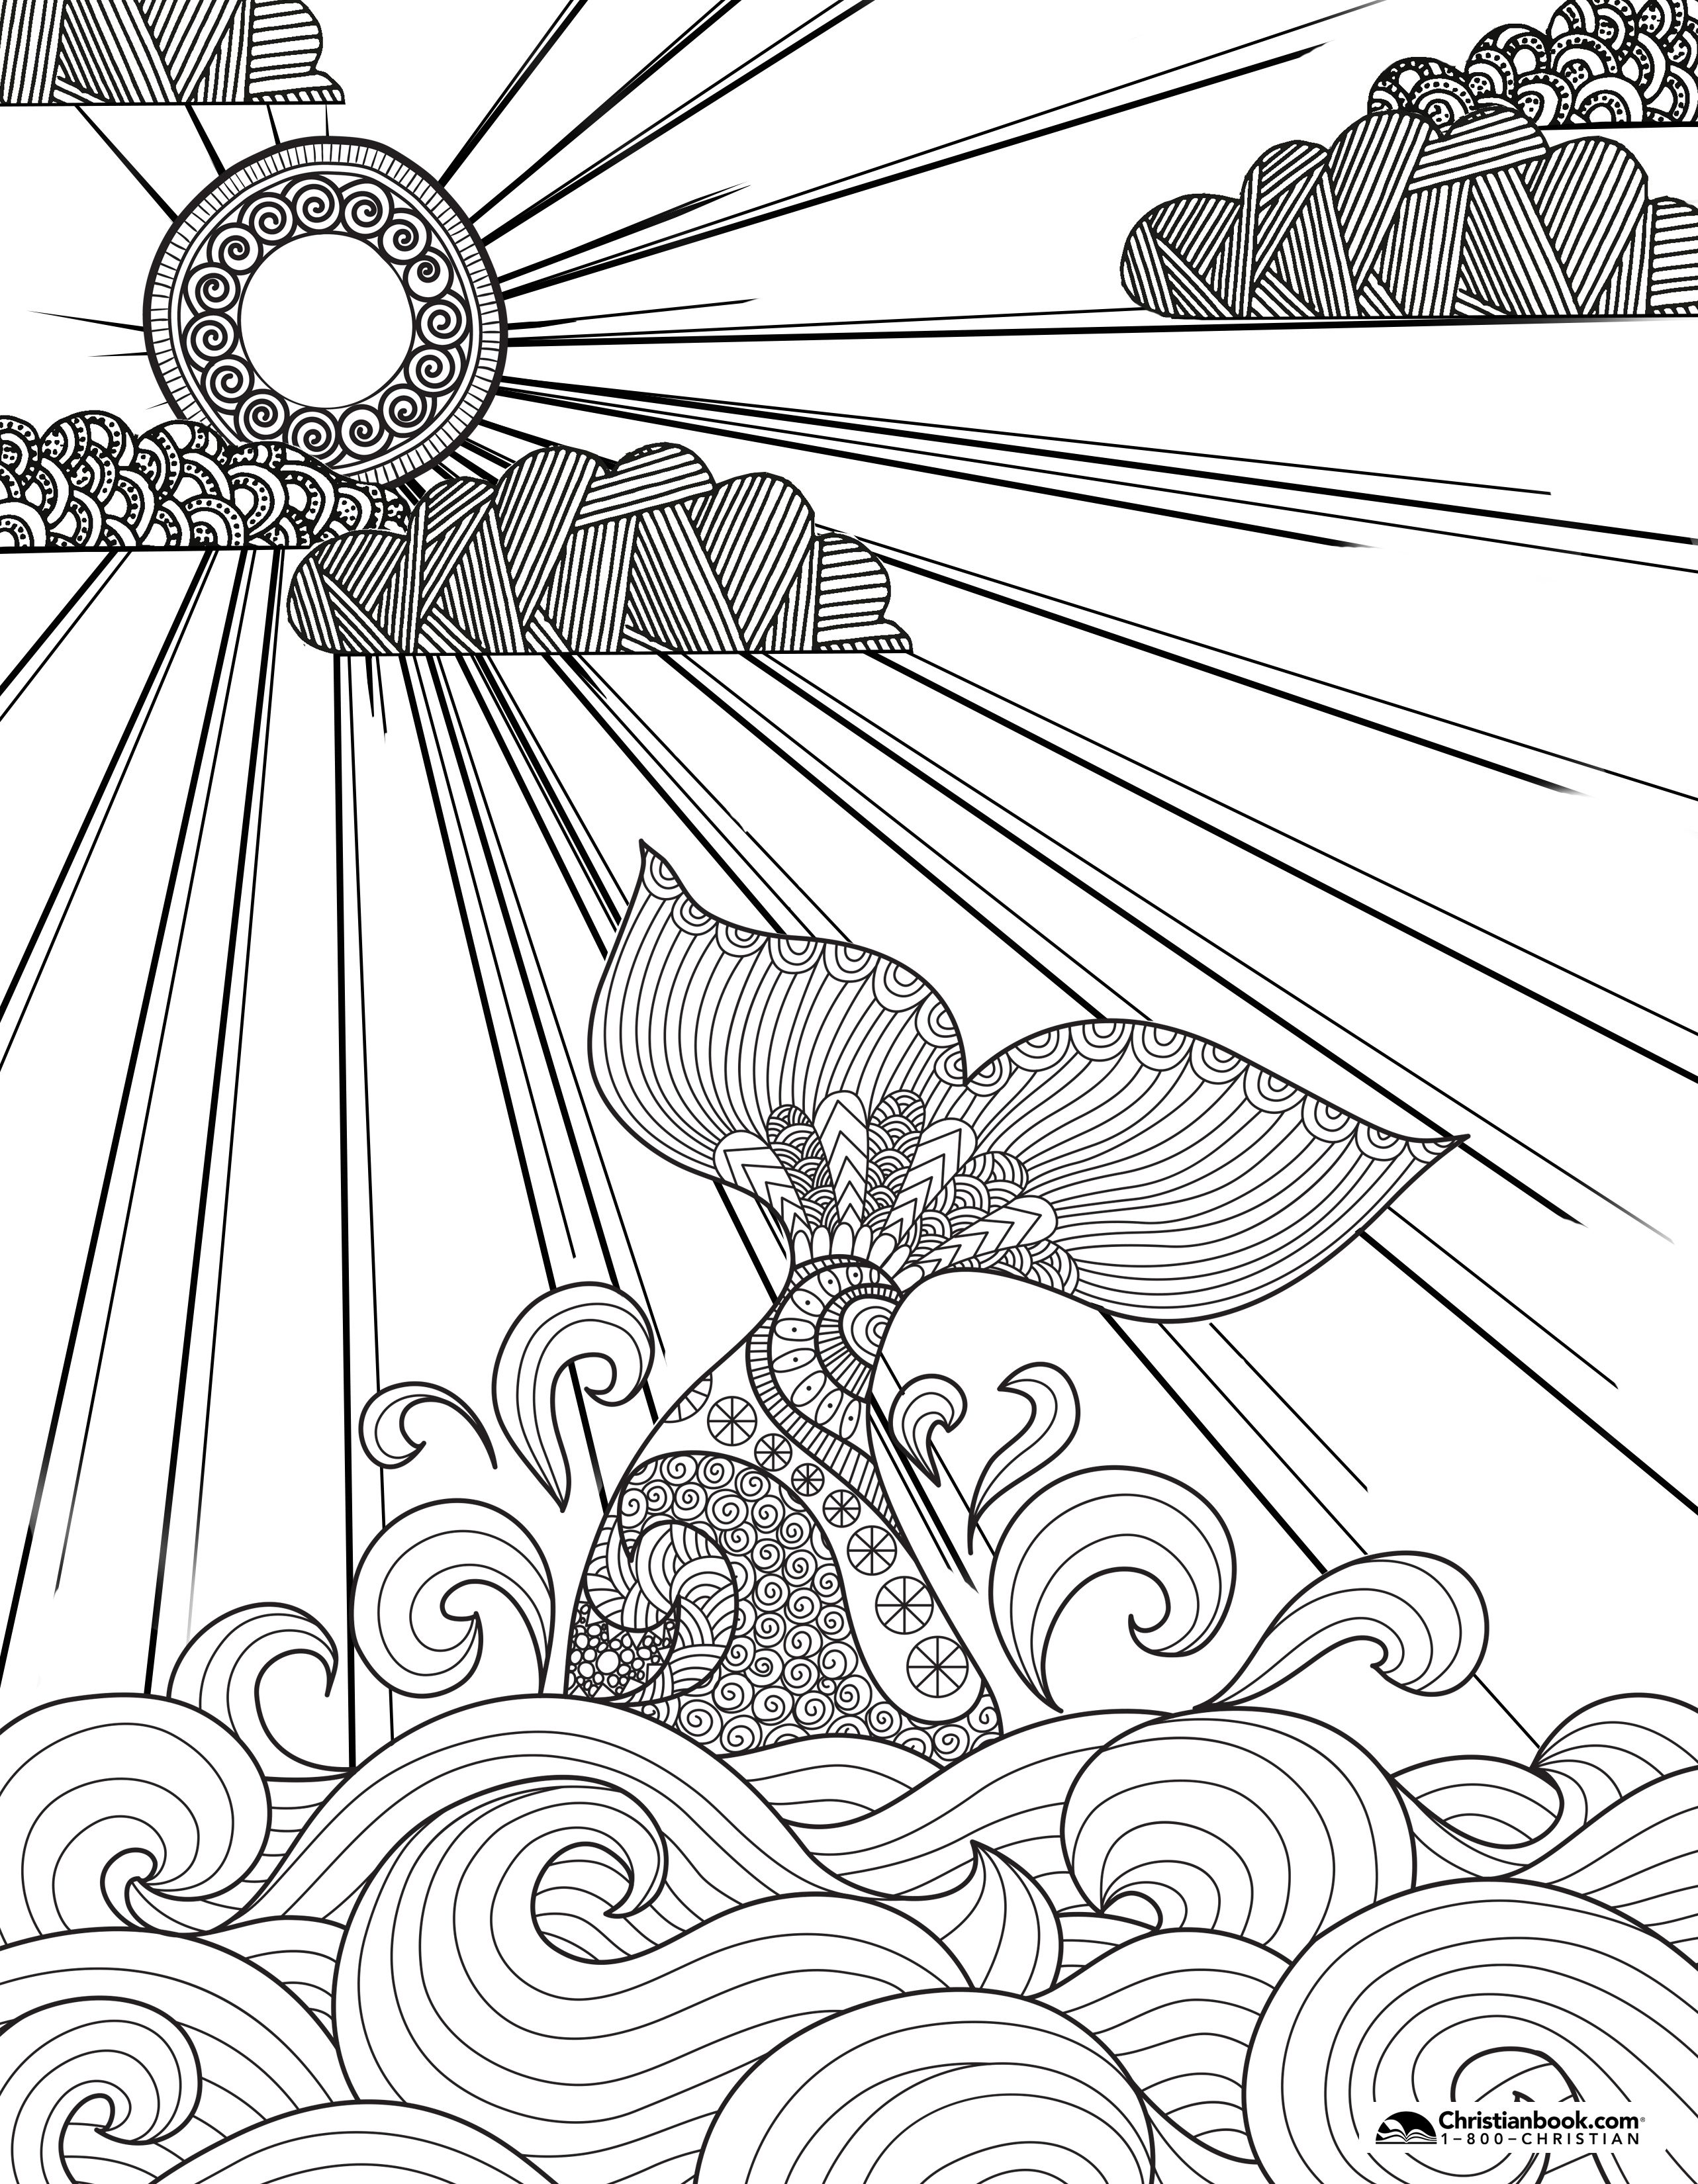 Coloring Pages For Spring Free Downloads Christianbook Com Blog Spring Coloring Sheets Whale Coloring Pages Free Coloring Pages